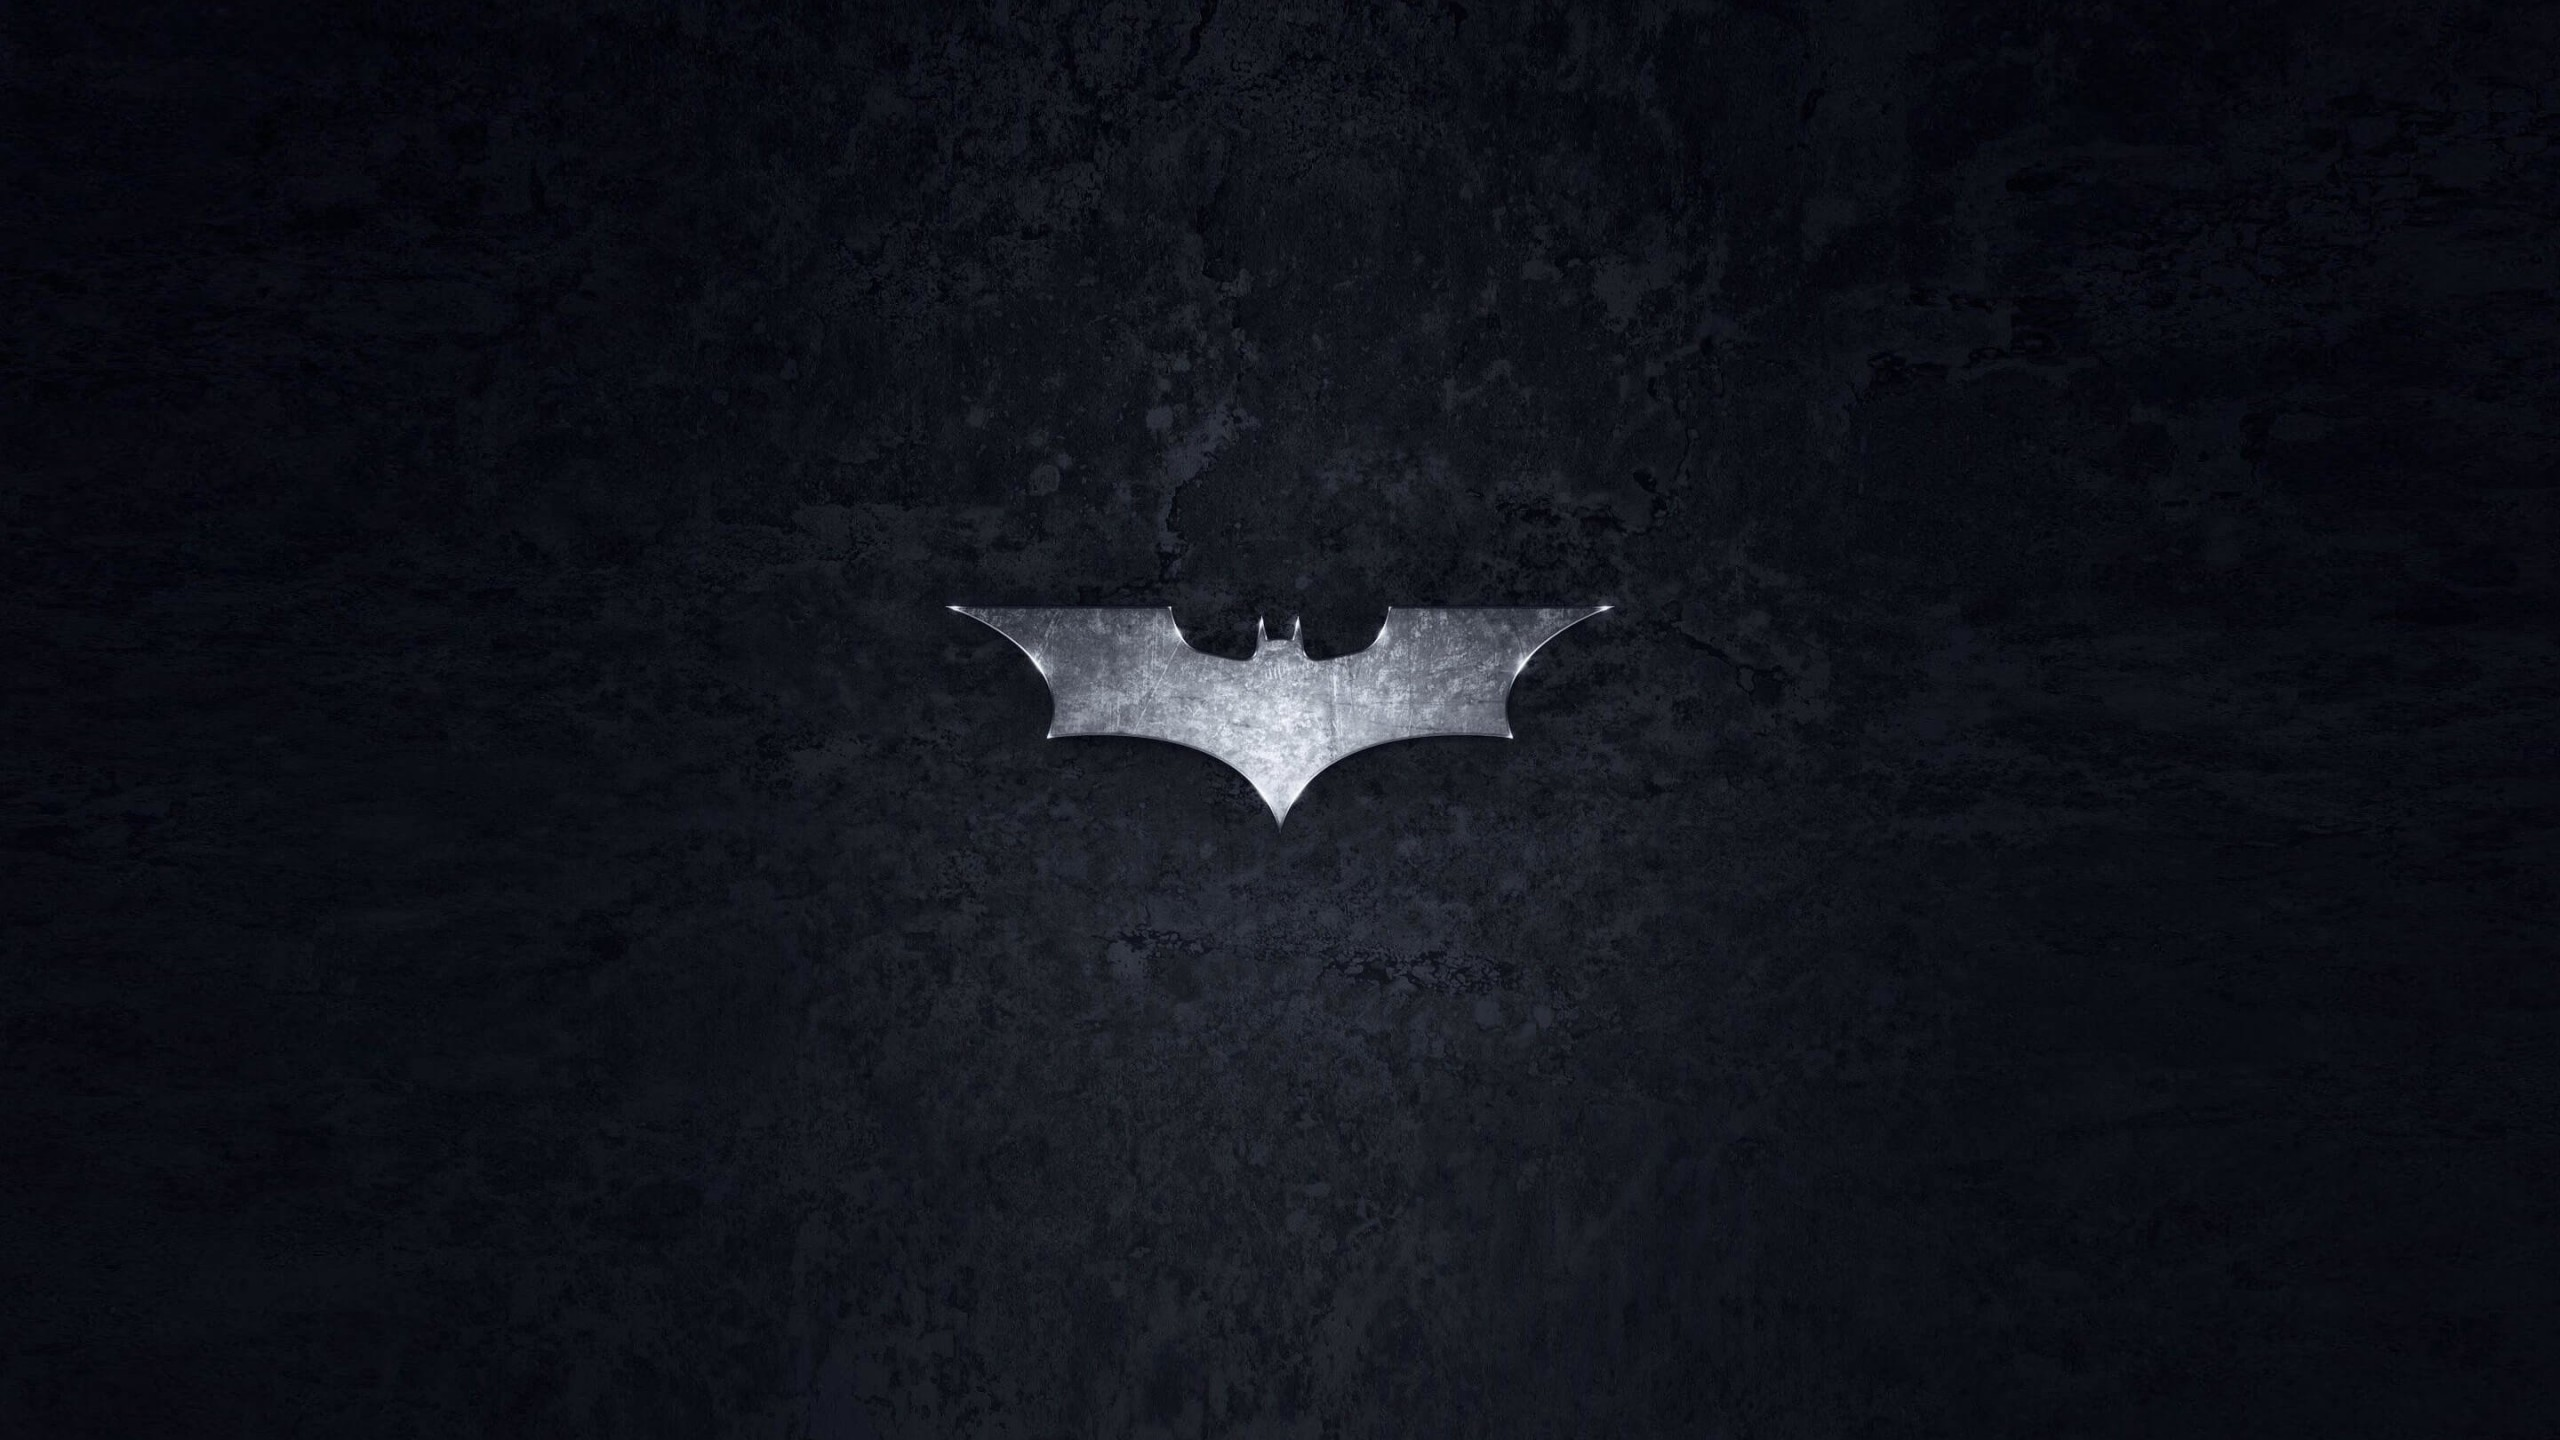 Grungy Batman Dark Knight Logo Wallpaper for Desktop 2560x1440